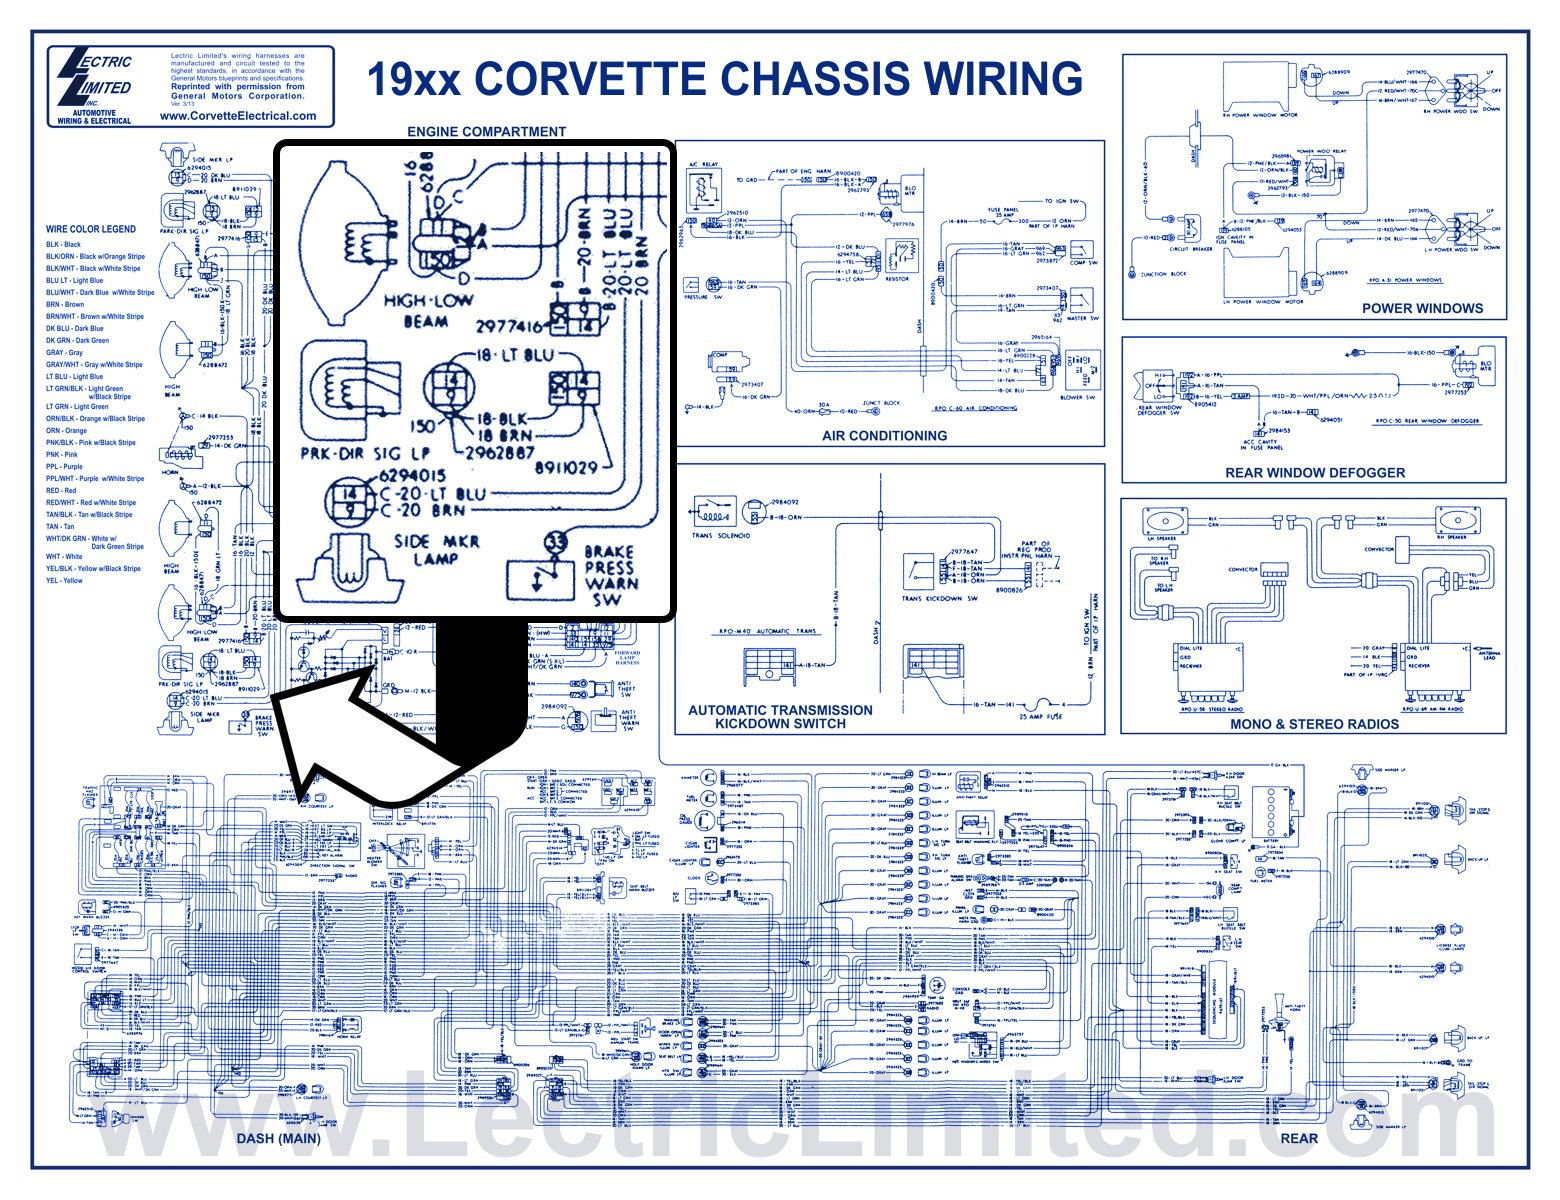 miscellaneous products 1992 corvette wiring diagram pdf 1992 corvette wiring diagram pdf 1992 corvette wiring diagram pdf 1992 corvette wiring diagram pdf